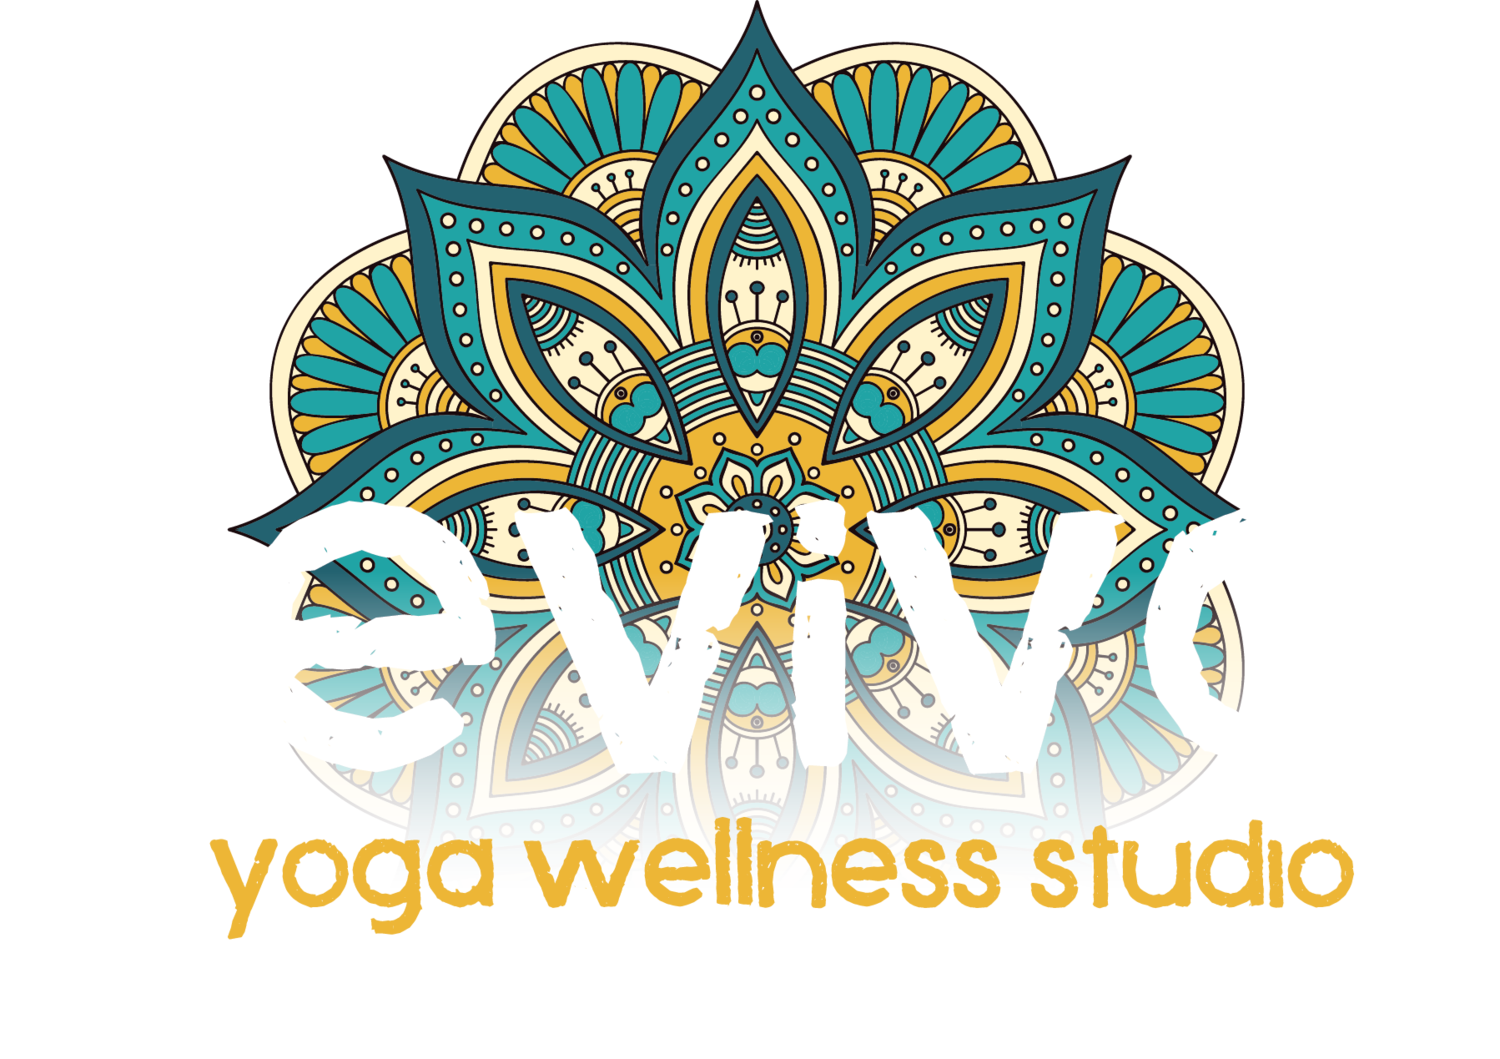 Revival Yoga Wellness Studio